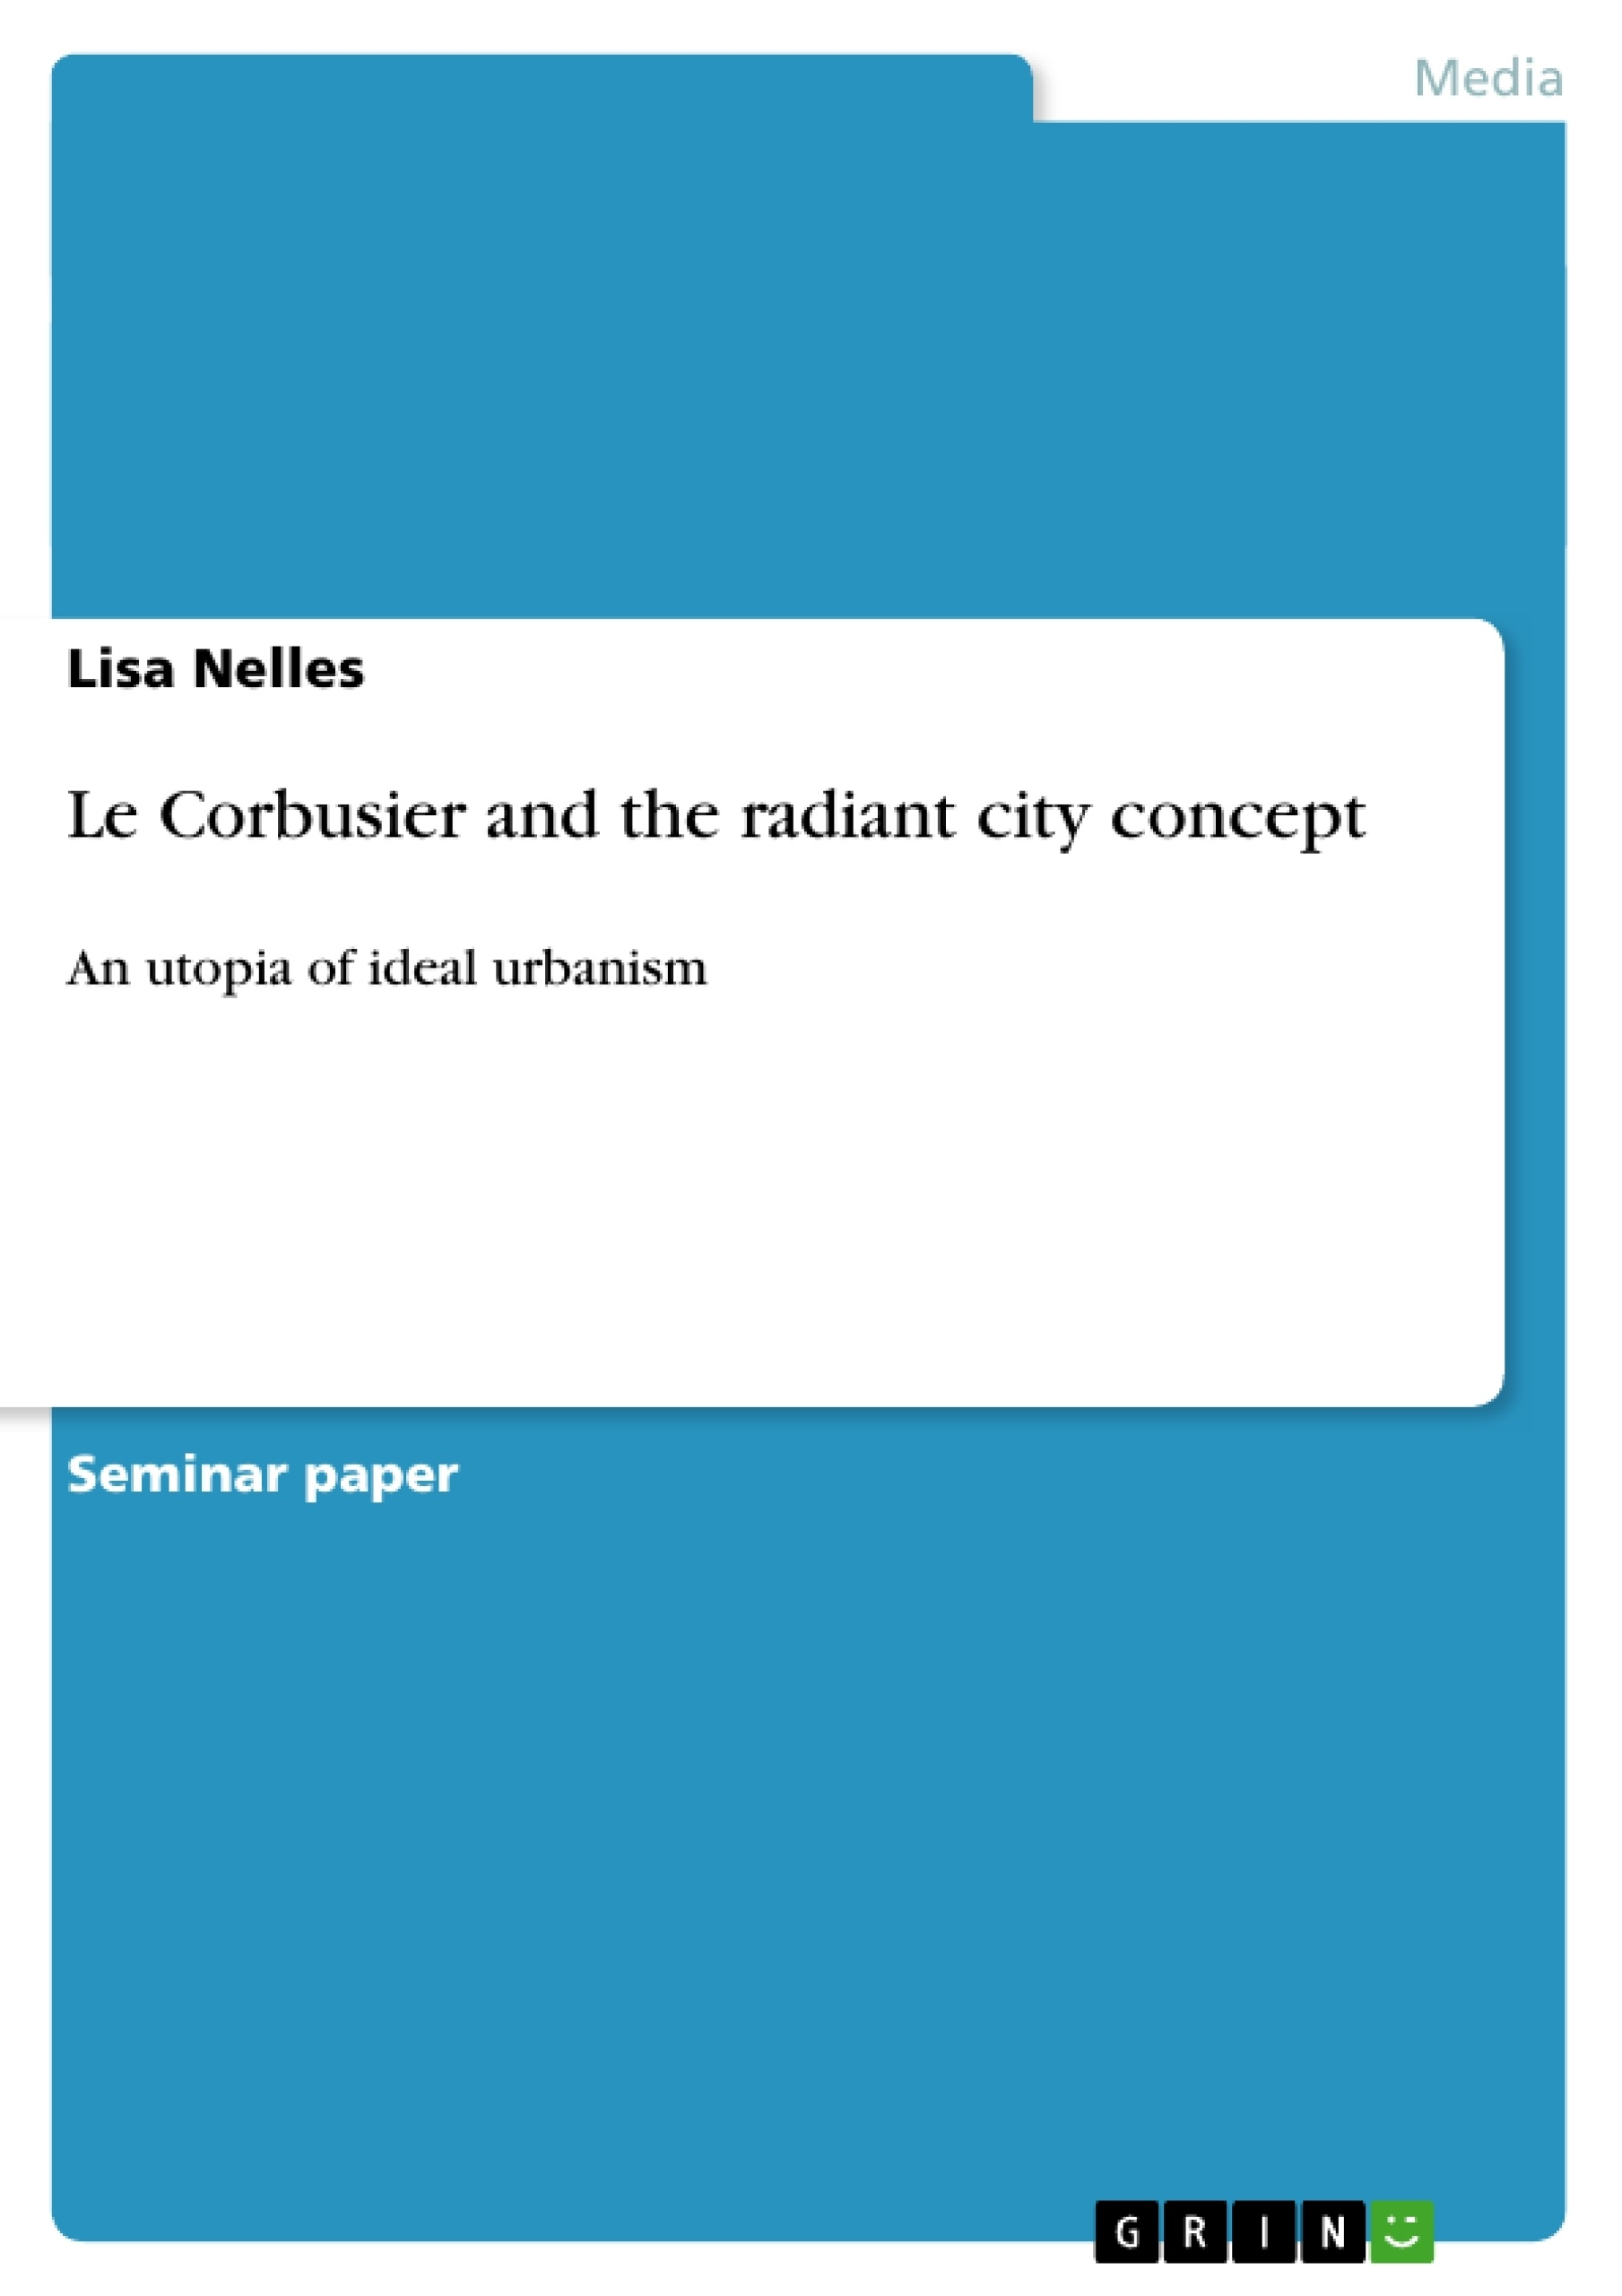 Title: Le Corbusier and the radiant city concept